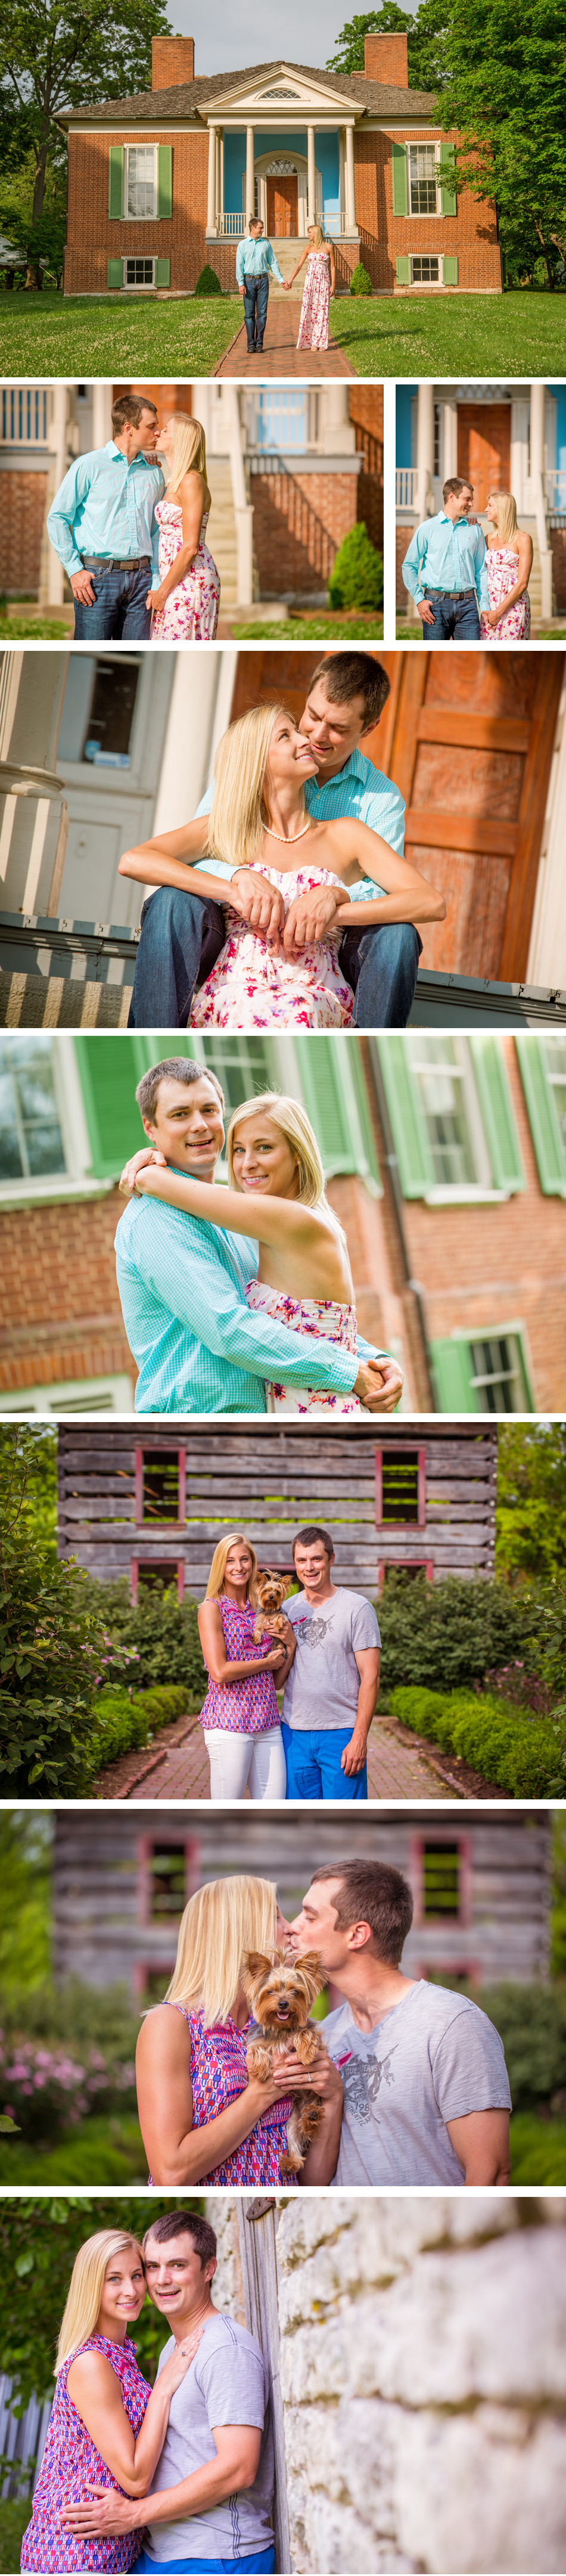 Farmington Engagement Photos eMotion image and video